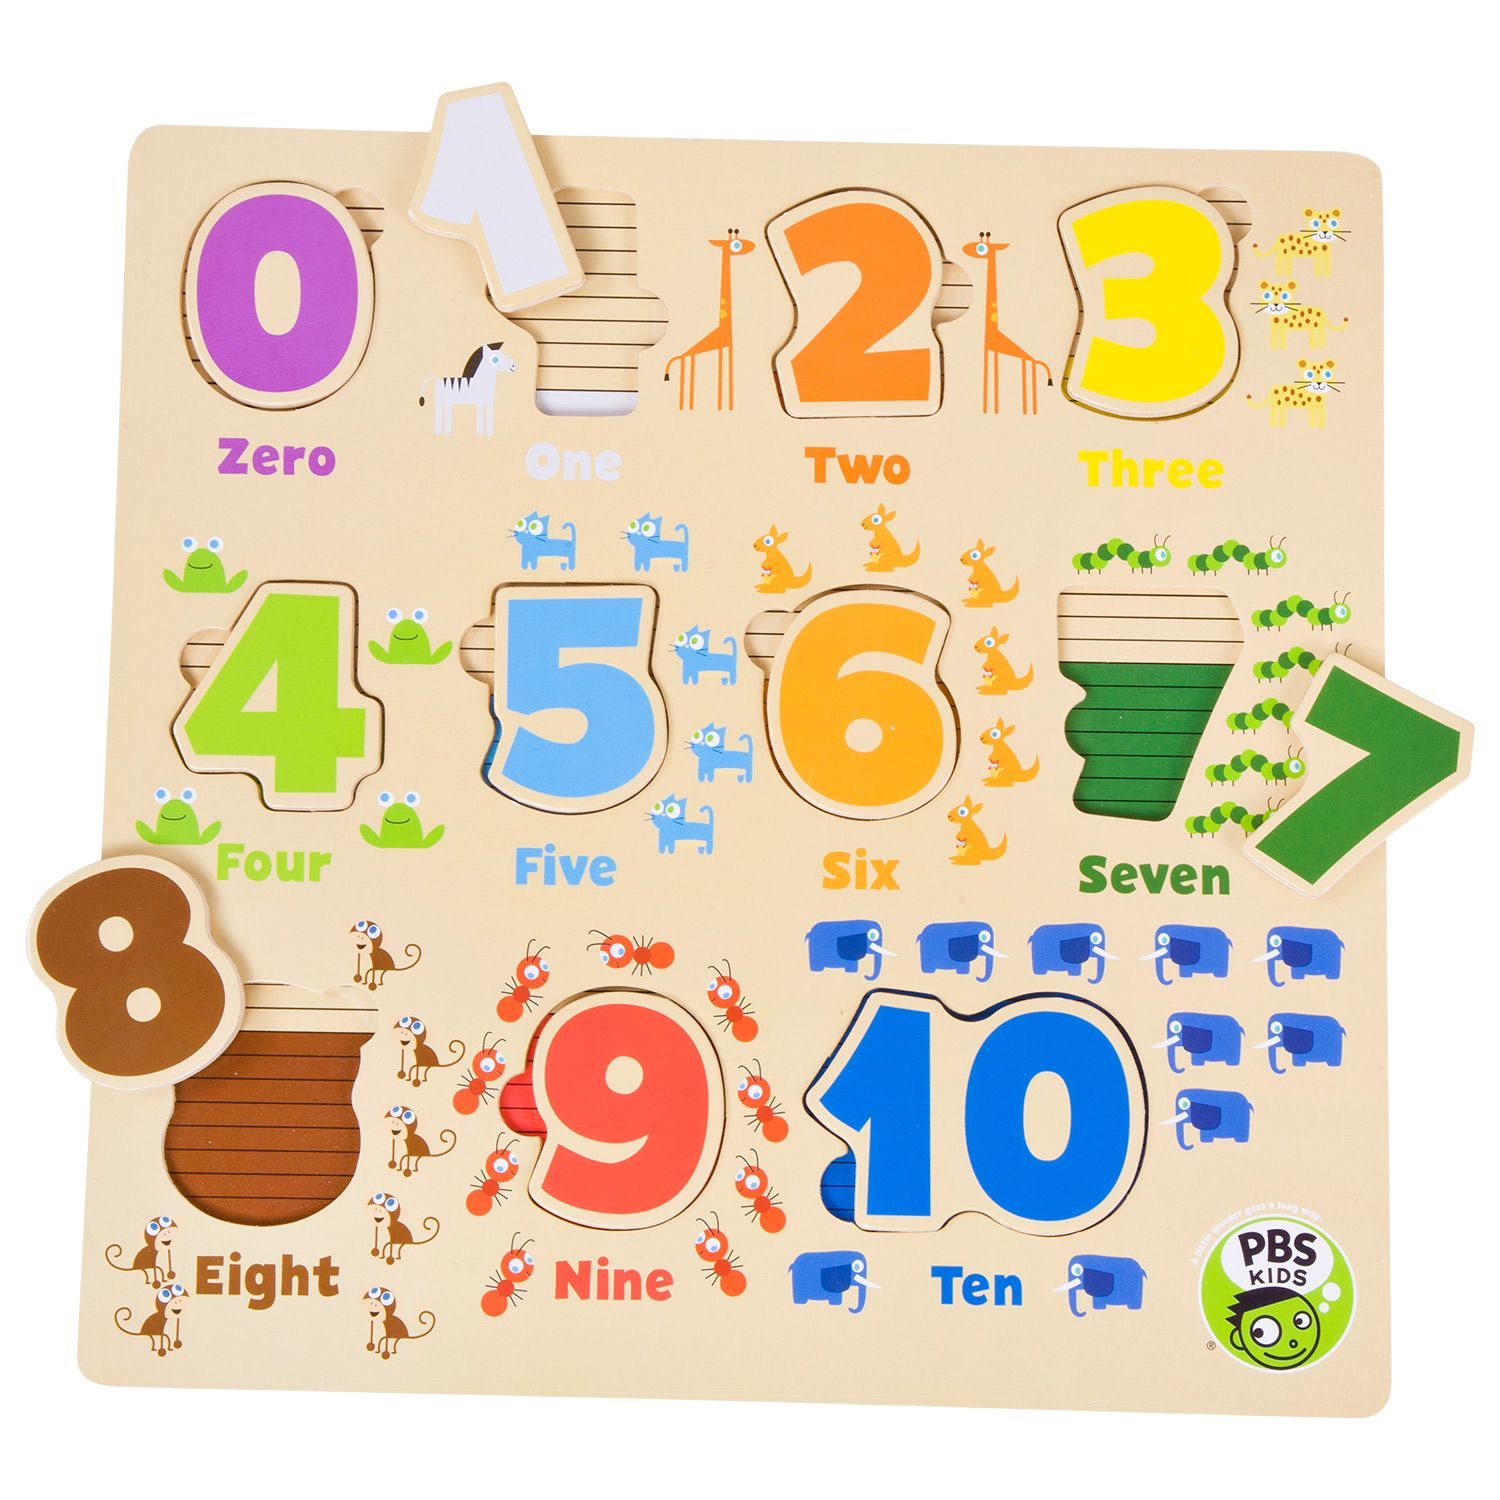 Count To 10 With This Wooden Number Puzzle Number Puzzles Pbs Kids Kids